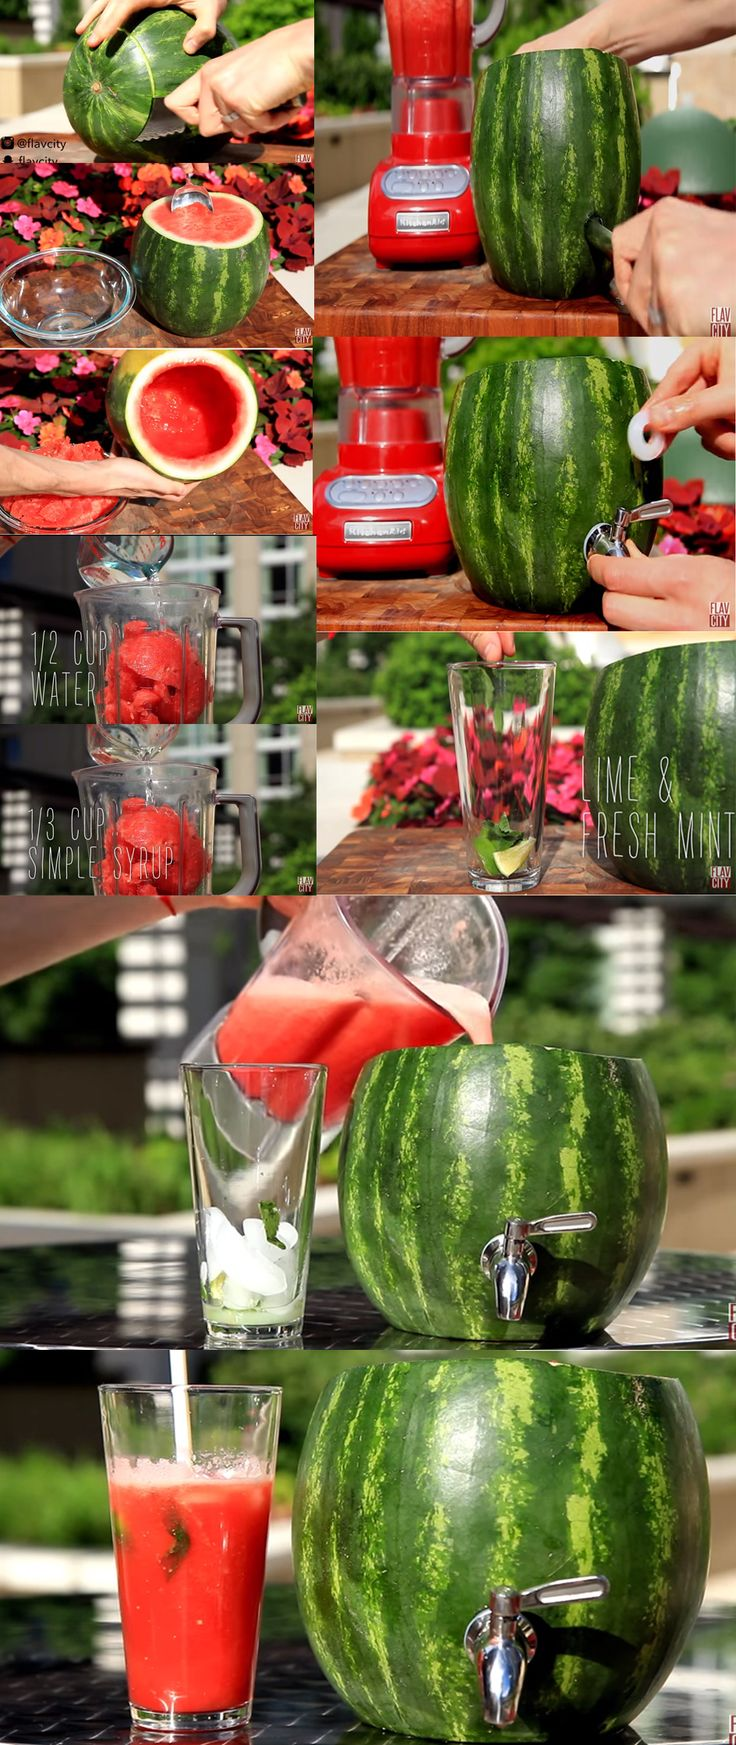 We know it's not summer yet… but if you are planning to throw a party soon, this do-it-yourself watermelon keg will absolutely make your shindig a sure winner! See video and written instructions here: http://gwyl.io/enjoy-dreams-of-sun-with-this-diy-watermelon-keg/